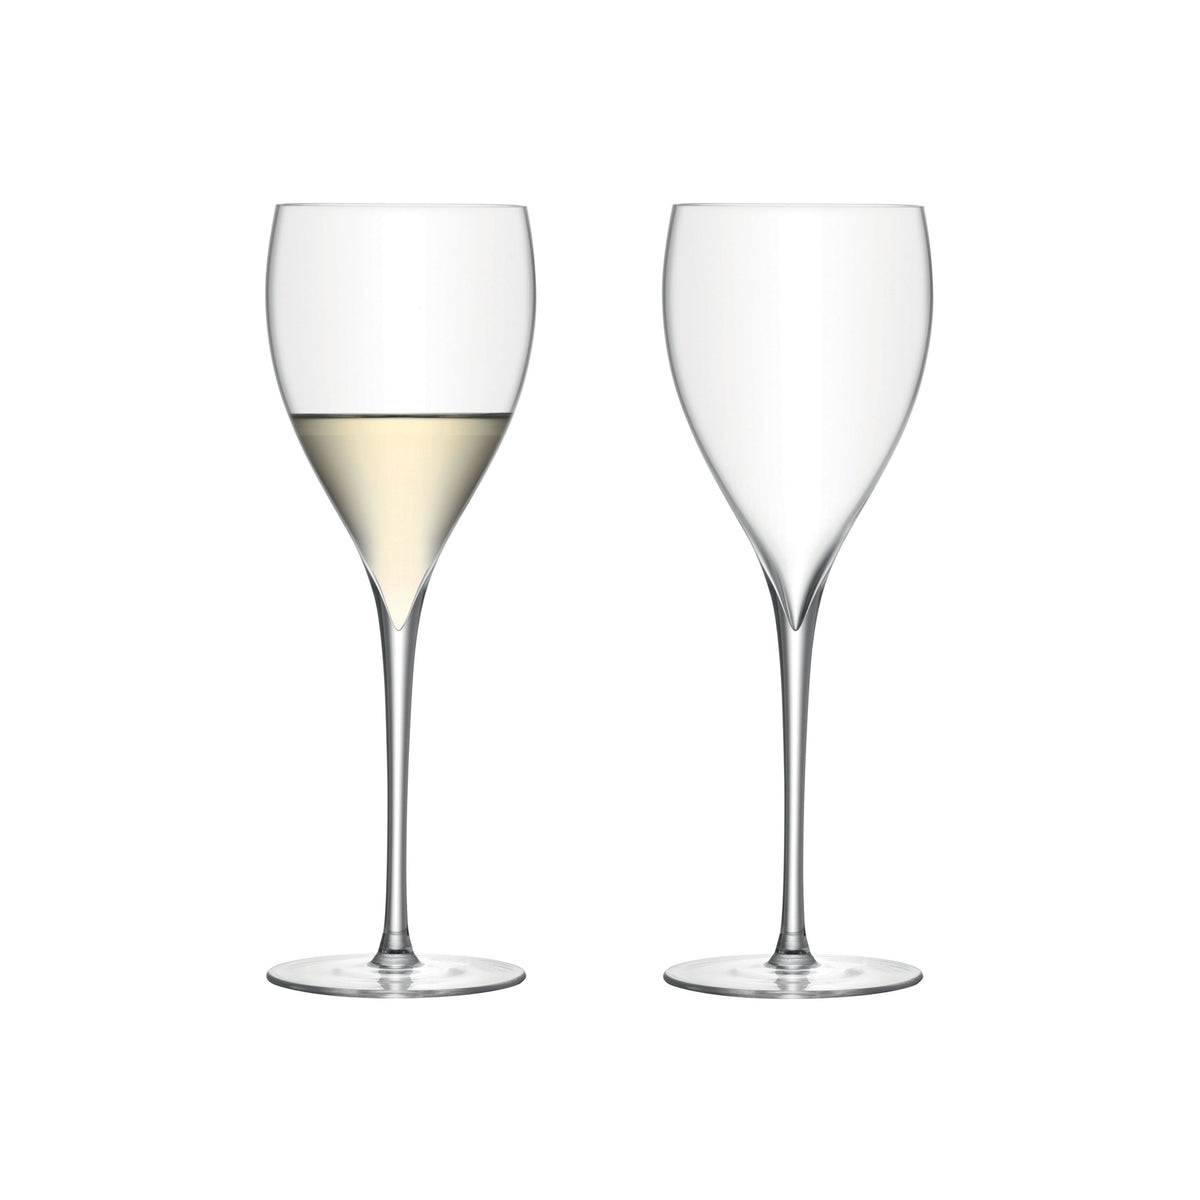 Savoy White Wine Glasses 12oz, Set of 2